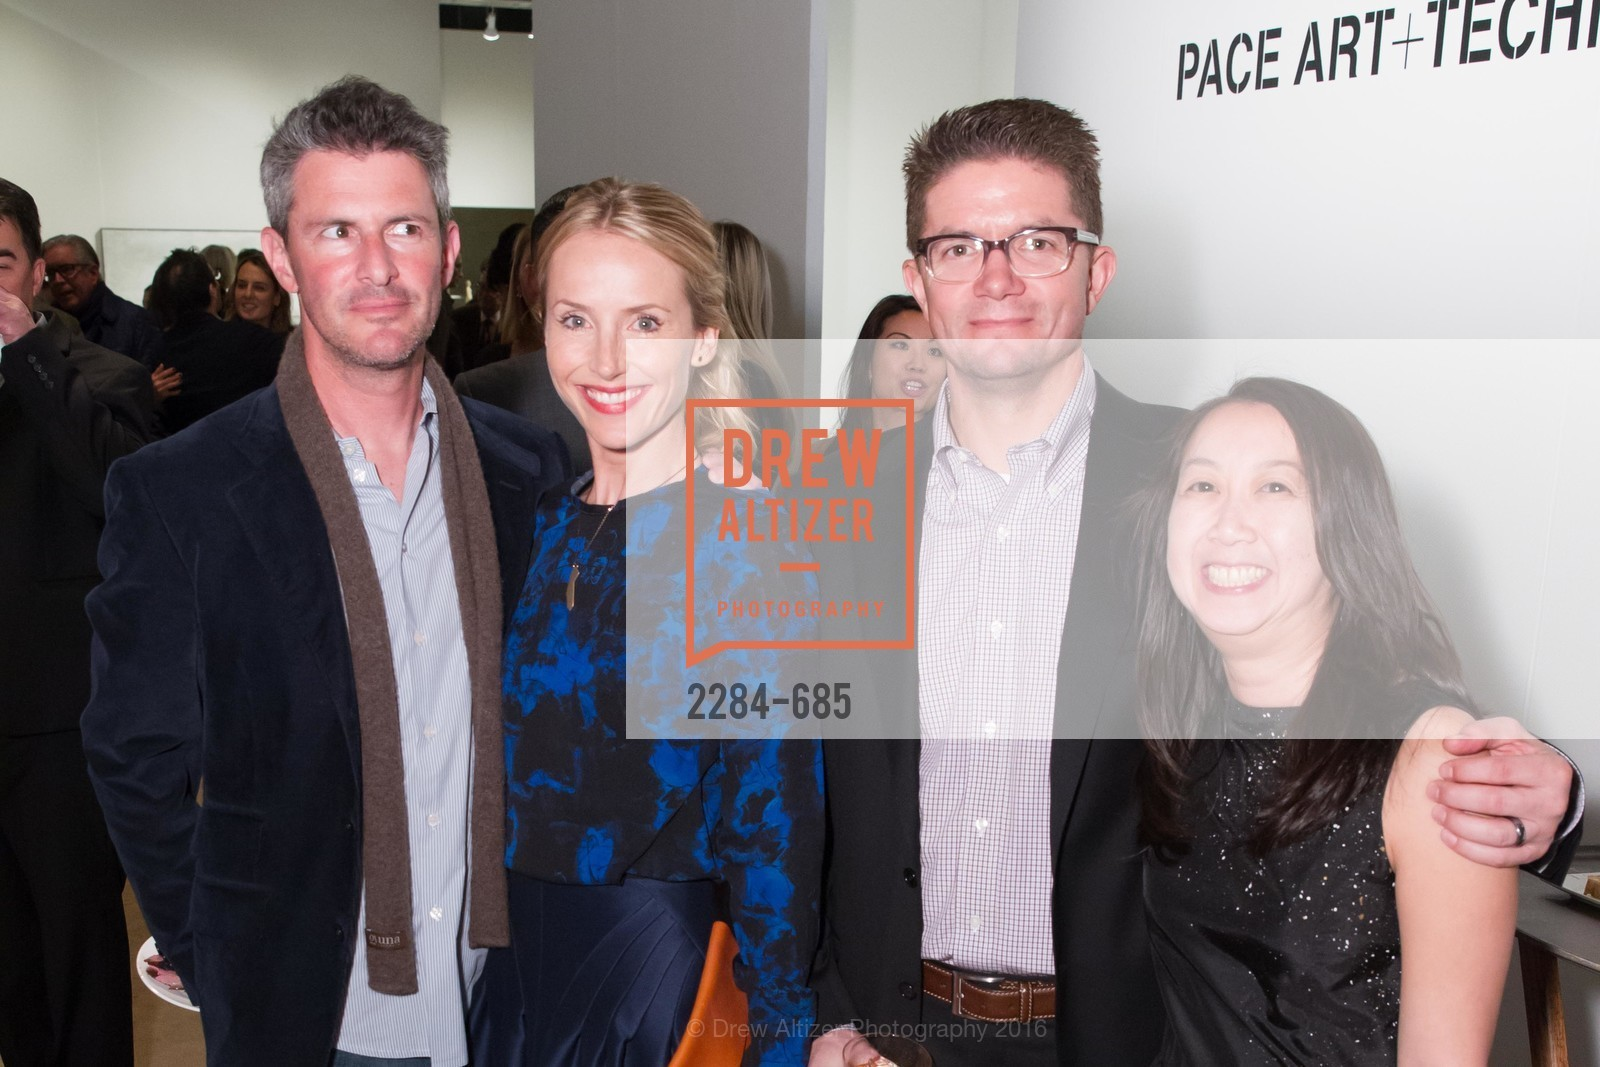 Adam Locke, Eve Wickman, John Callum, Anh-Minh, FOG Design+Art Preview Gala, Fort Mason Center Festival Pavilion, January 13th, 2016,Drew Altizer, Drew Altizer Photography, full-service agency, private events, San Francisco photographer, photographer california